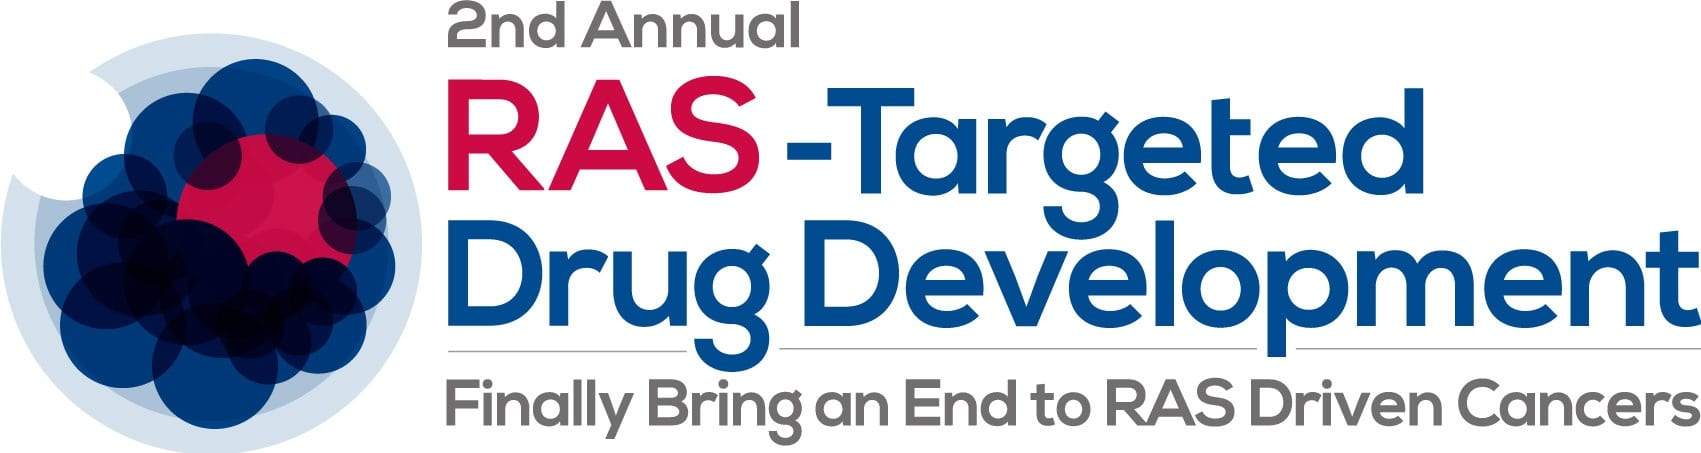 5001_RAS_Targeted_Drug_Development_Boston